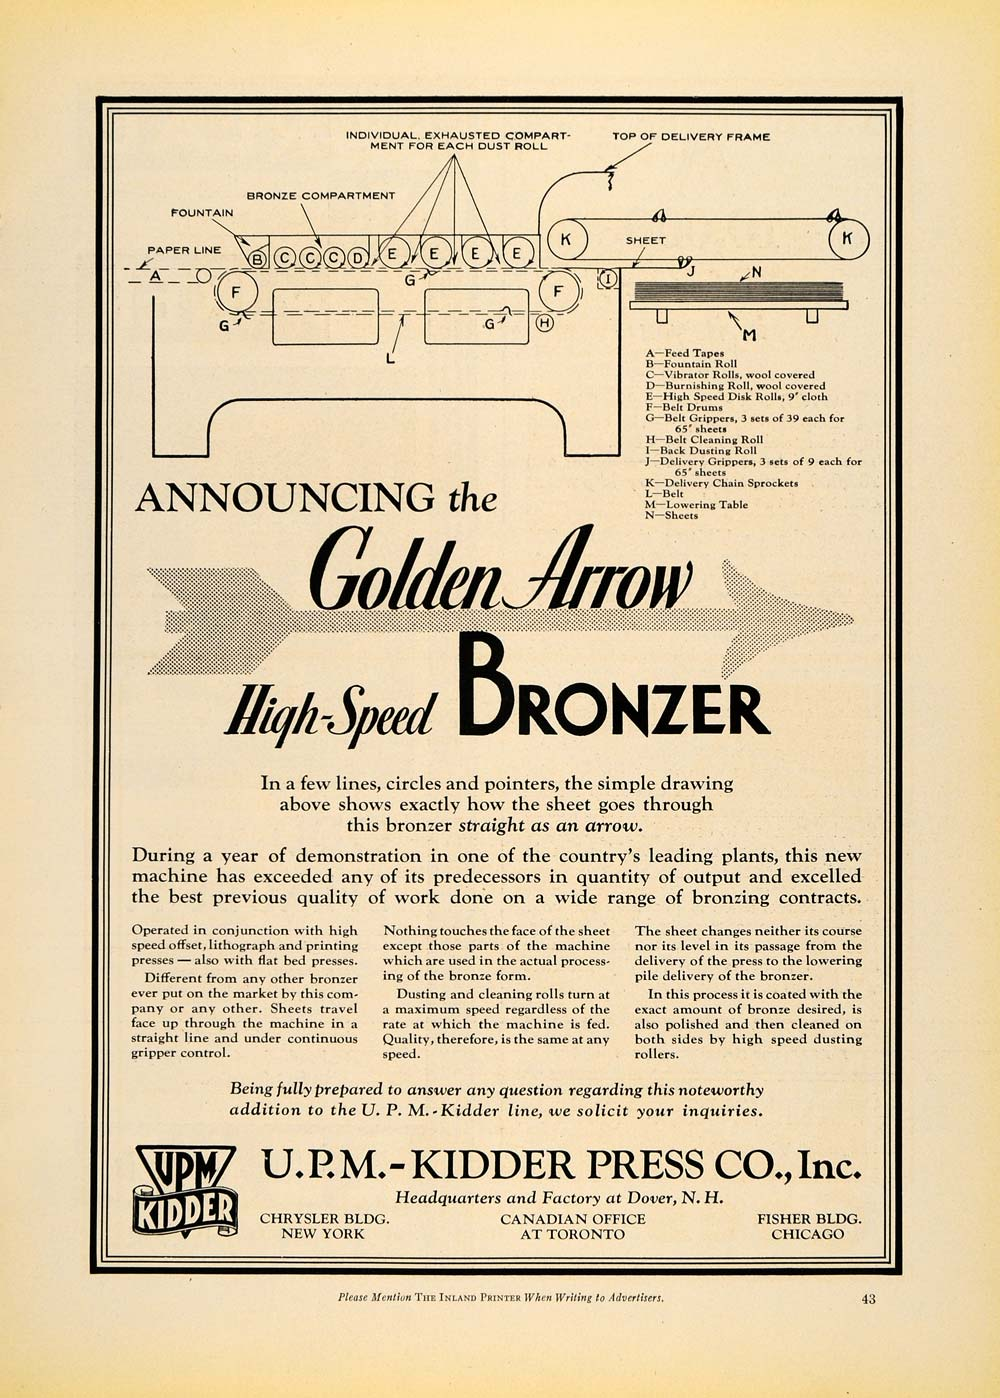 1930 Ad UPM Kidder Press Co Golden Arrow Bronzer NY - ORIGINAL ADVERTISING IPR1